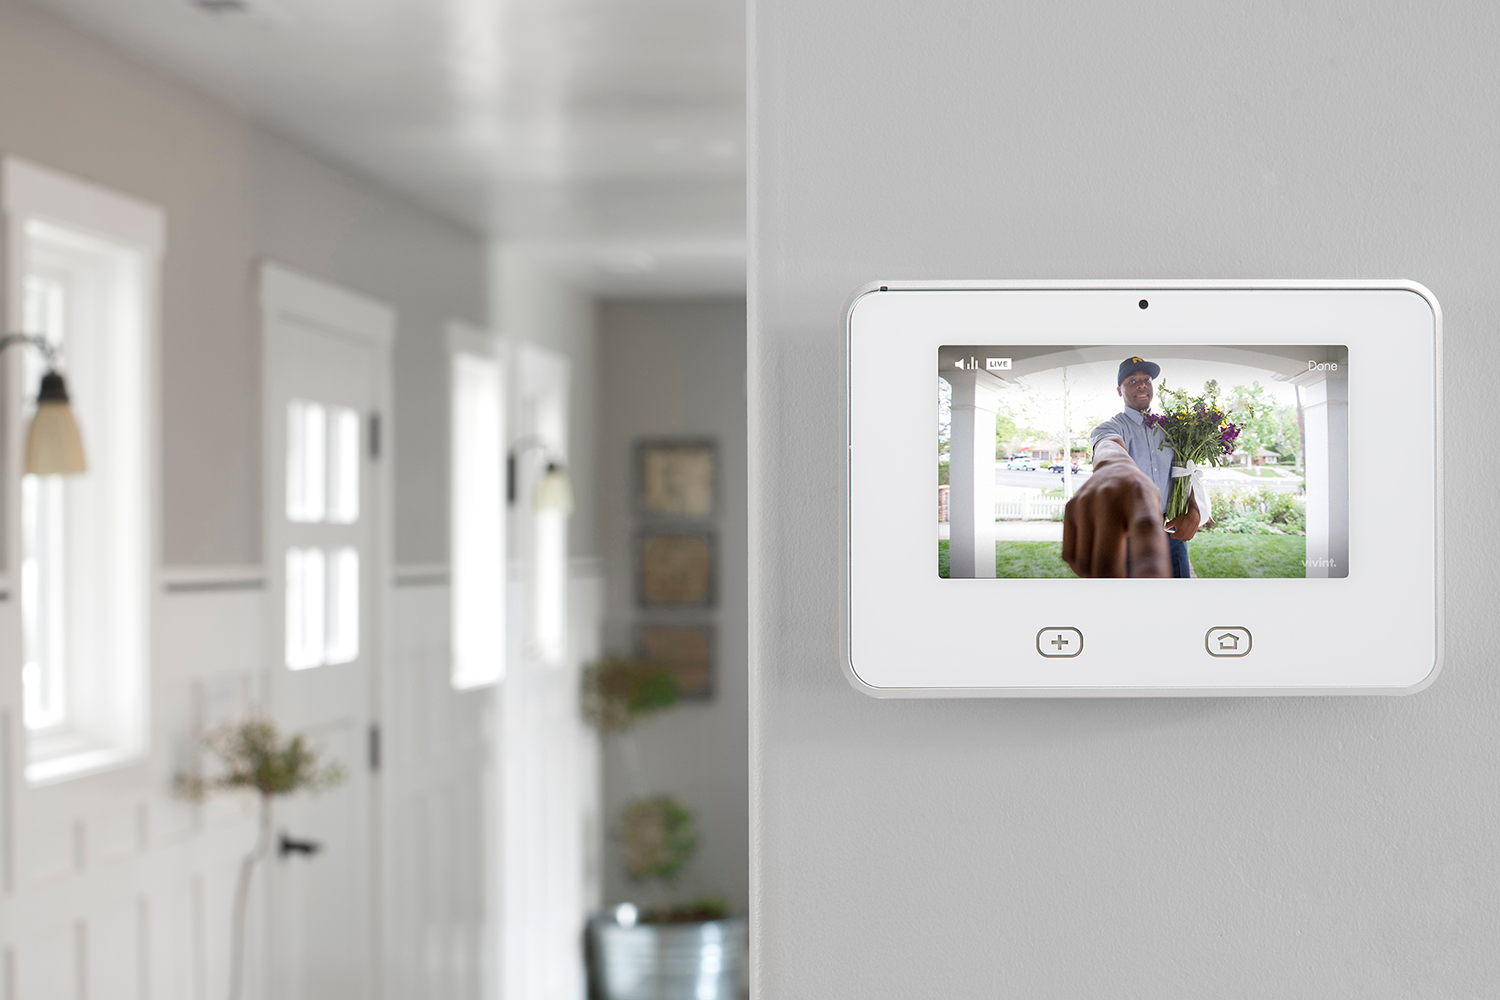 Vivint's appropriately-named SkyControl Panel